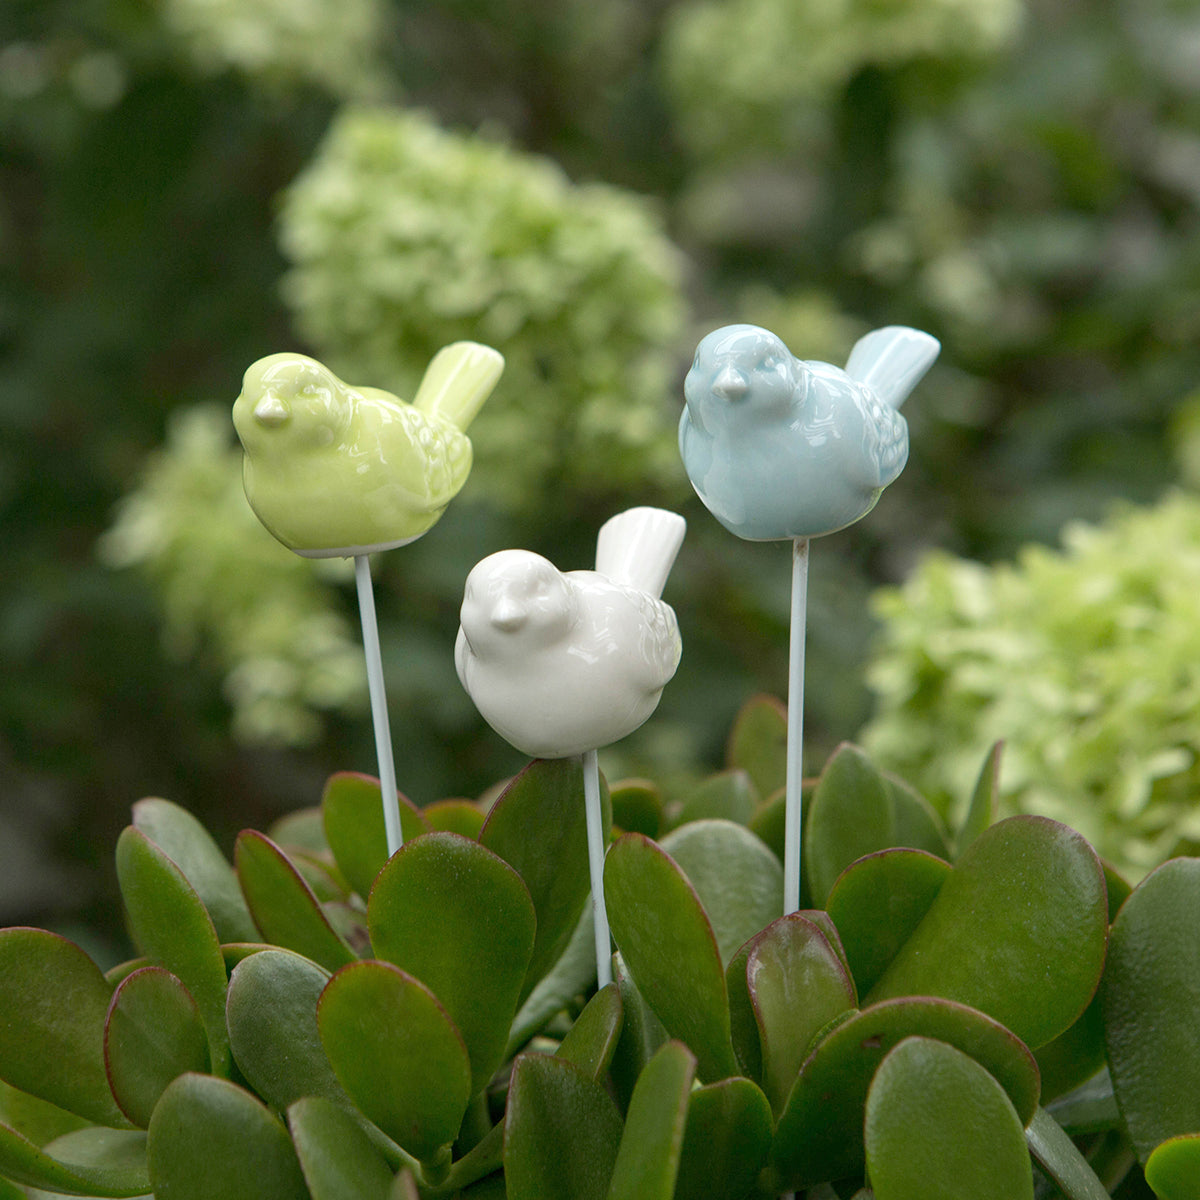 Porcelain Bird Planter Stake 3pc Assortment